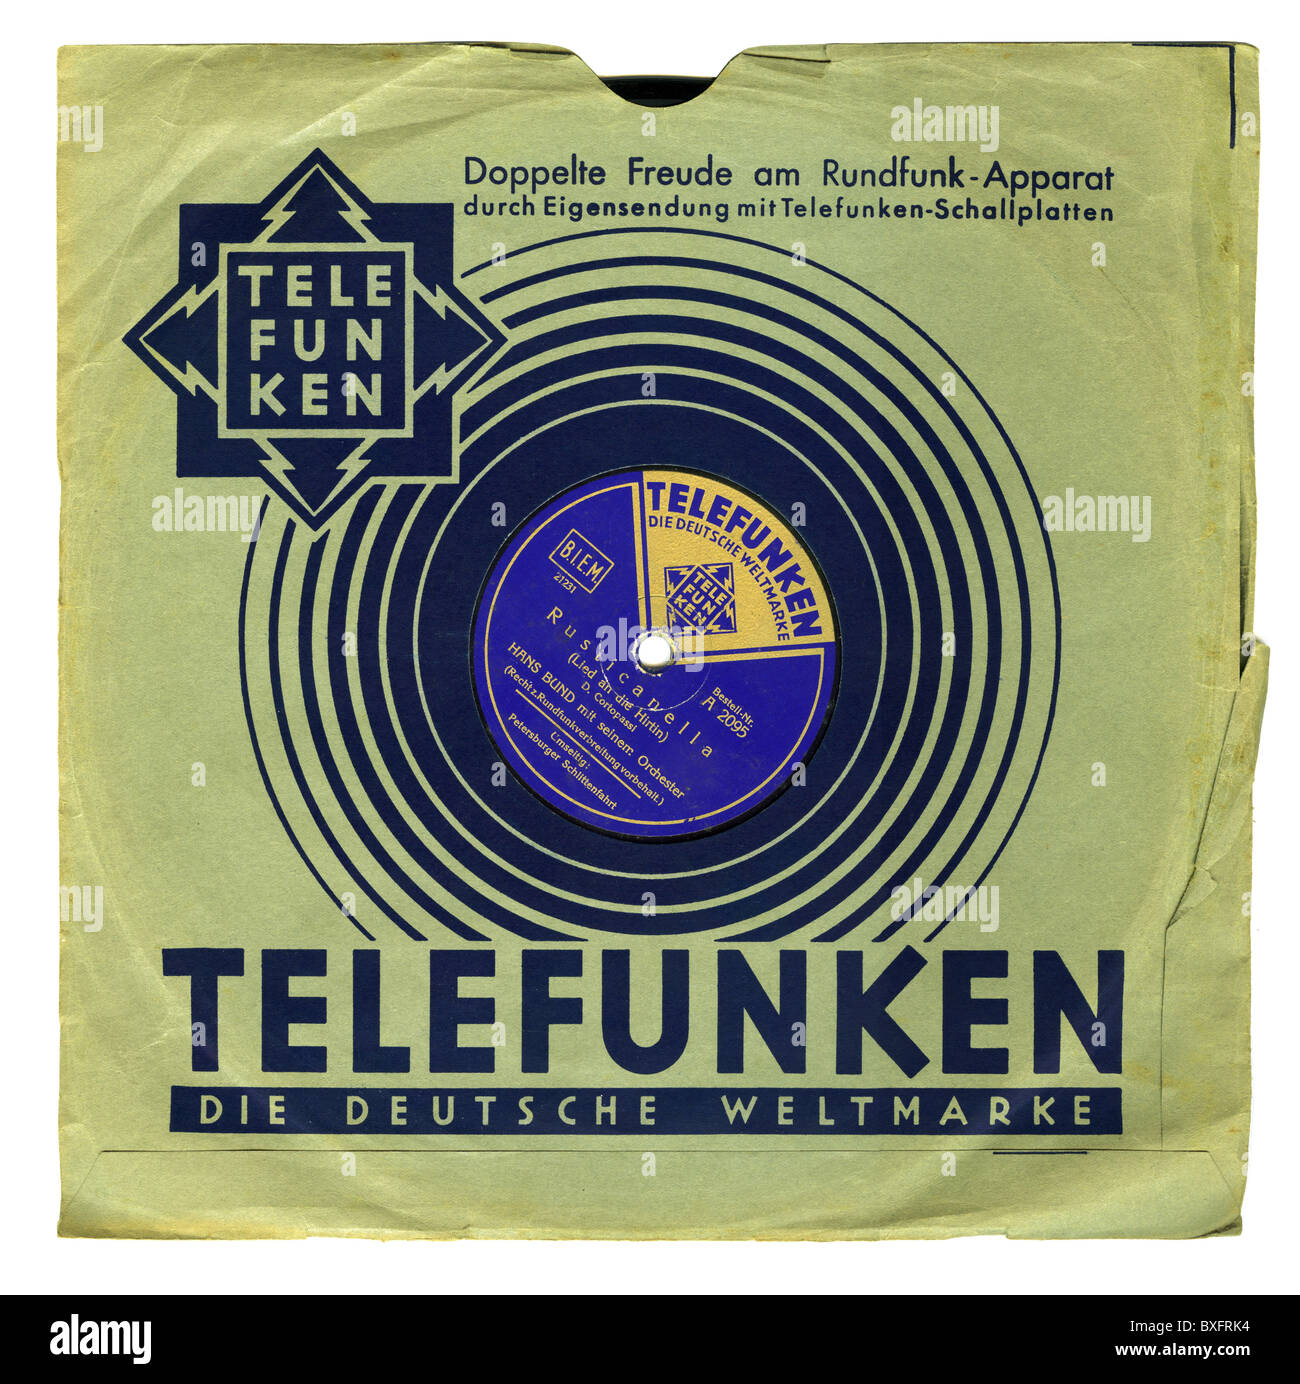 music, records, Telefunken, long-playing record in record sleeve, Rusticanella, interpreter Hans Bund with his orchestra, - Stock Image